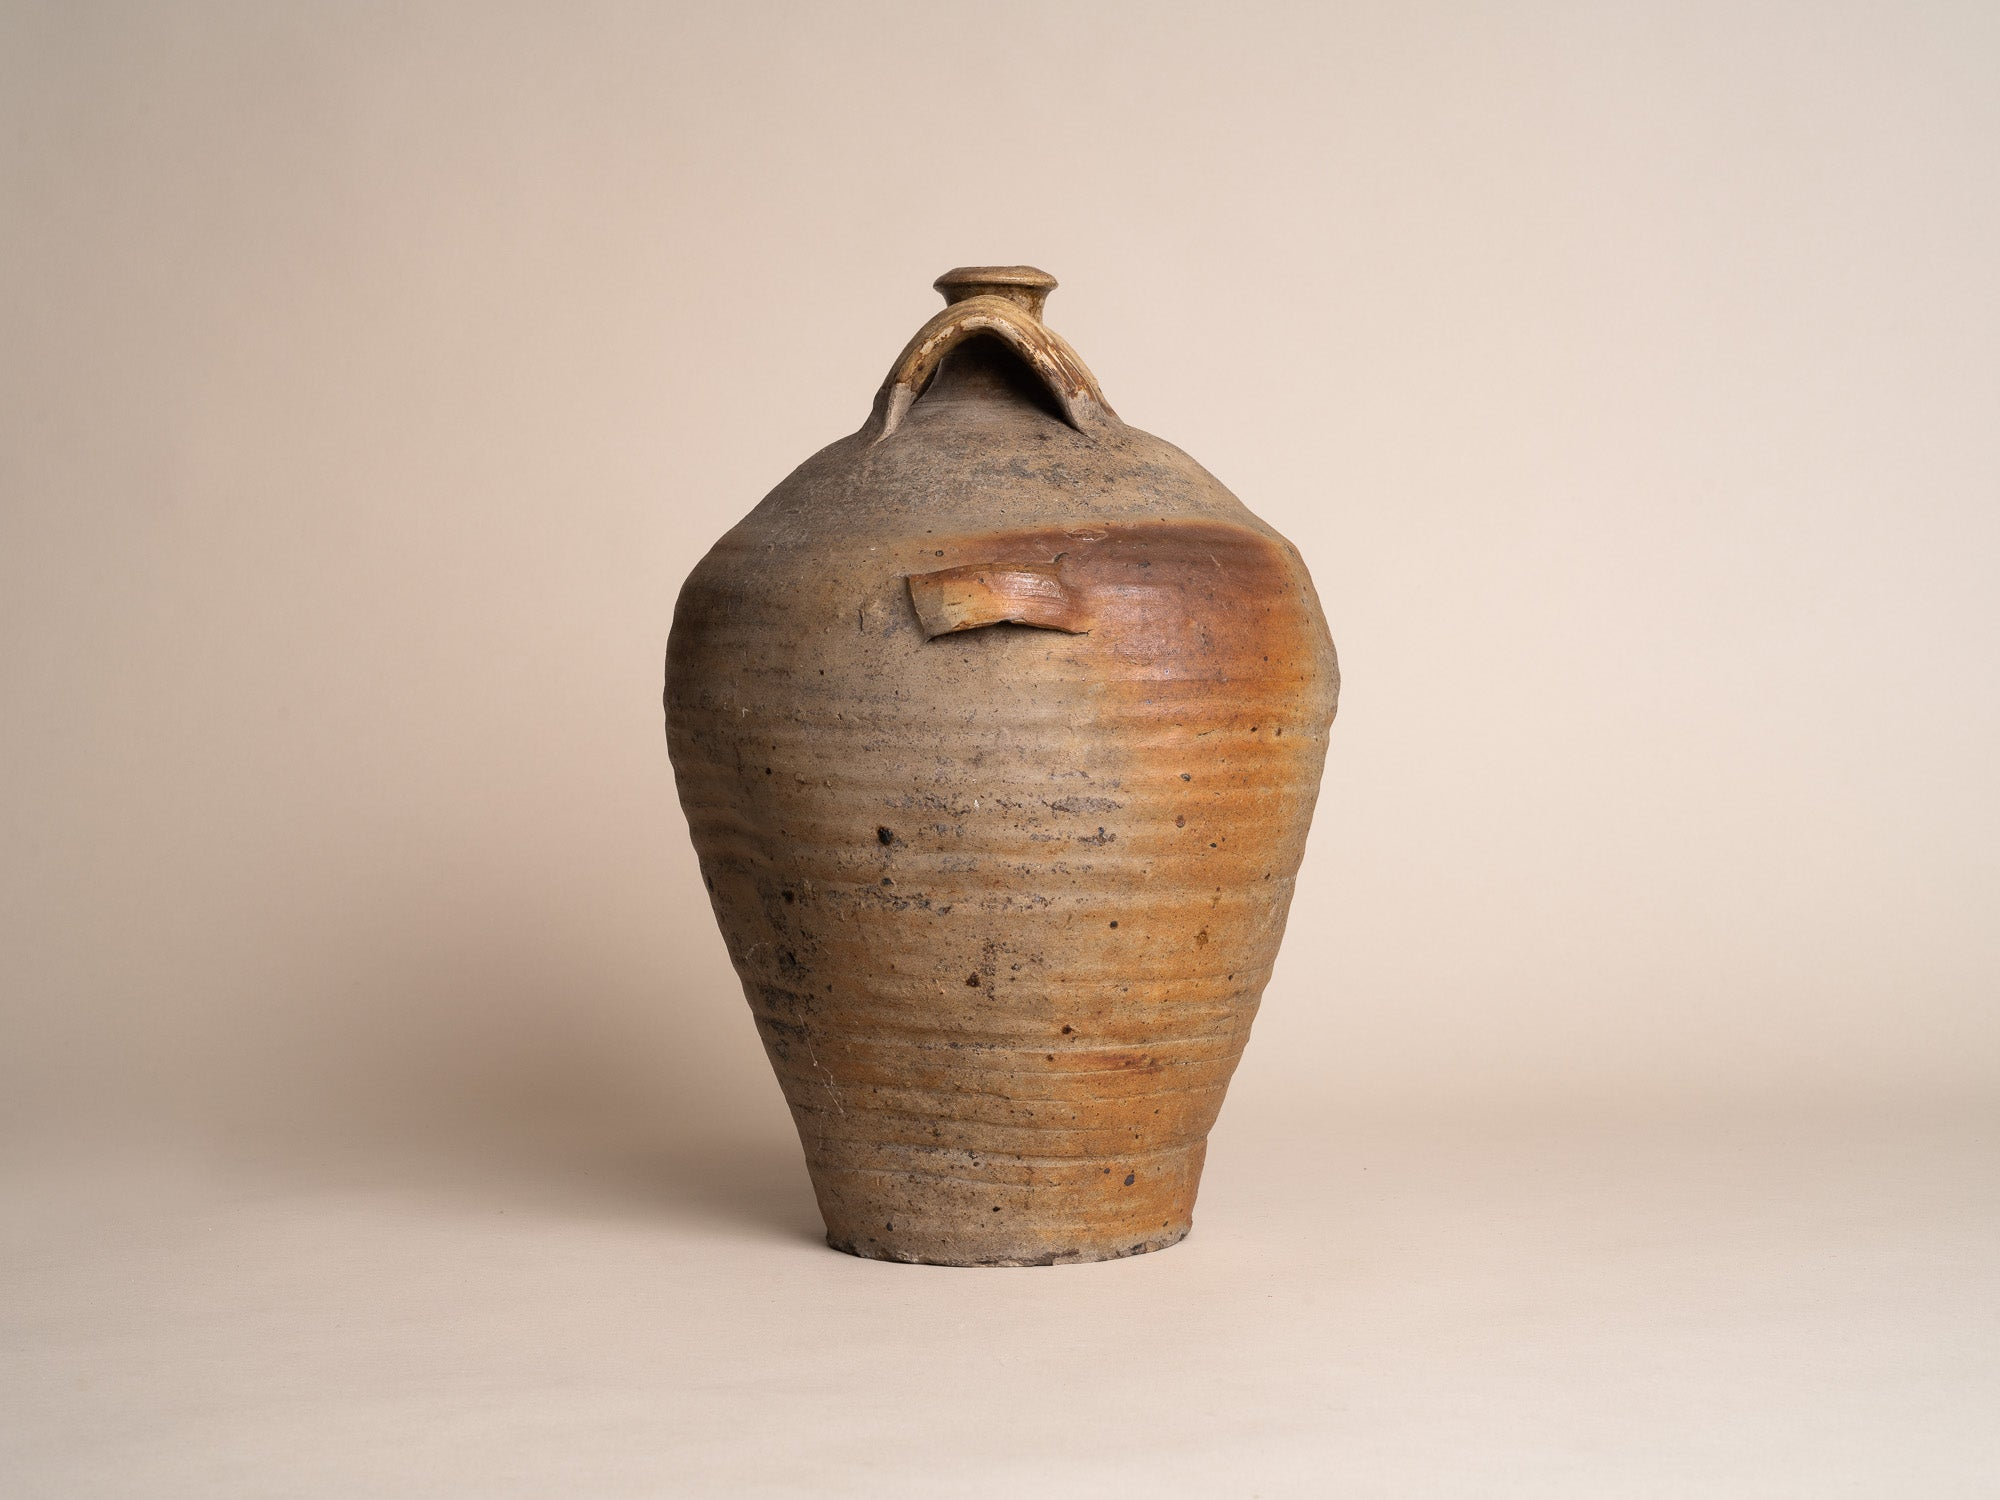 Bombonne à quatre anses en grès de la Borne, France (XVIIe / XVIIIe siècles)..Stoneware folk bottle pot by anonymous La Borne potters, France (17th / 18th century)